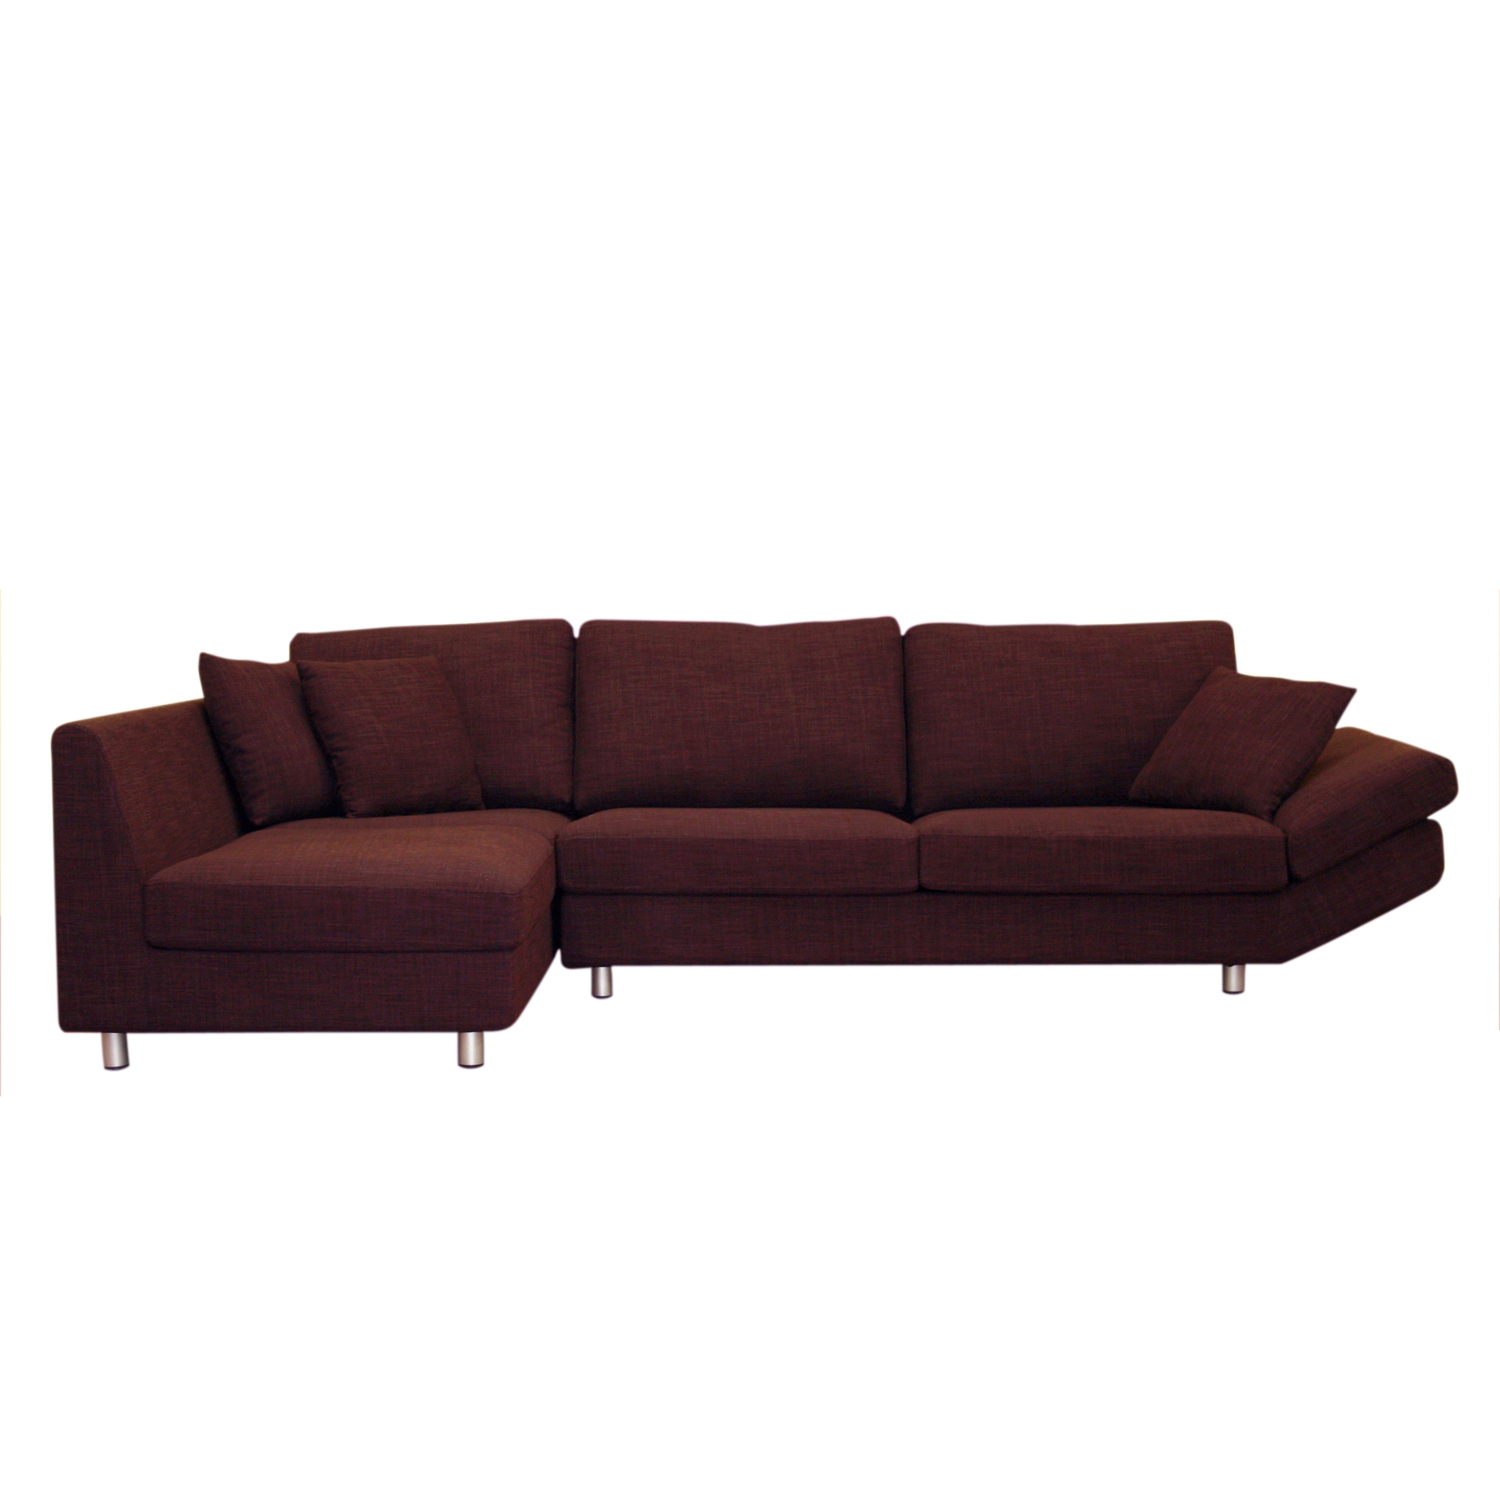 Whole sale interiors natalie deep plum fabric contemporary for Deep sofas for sale